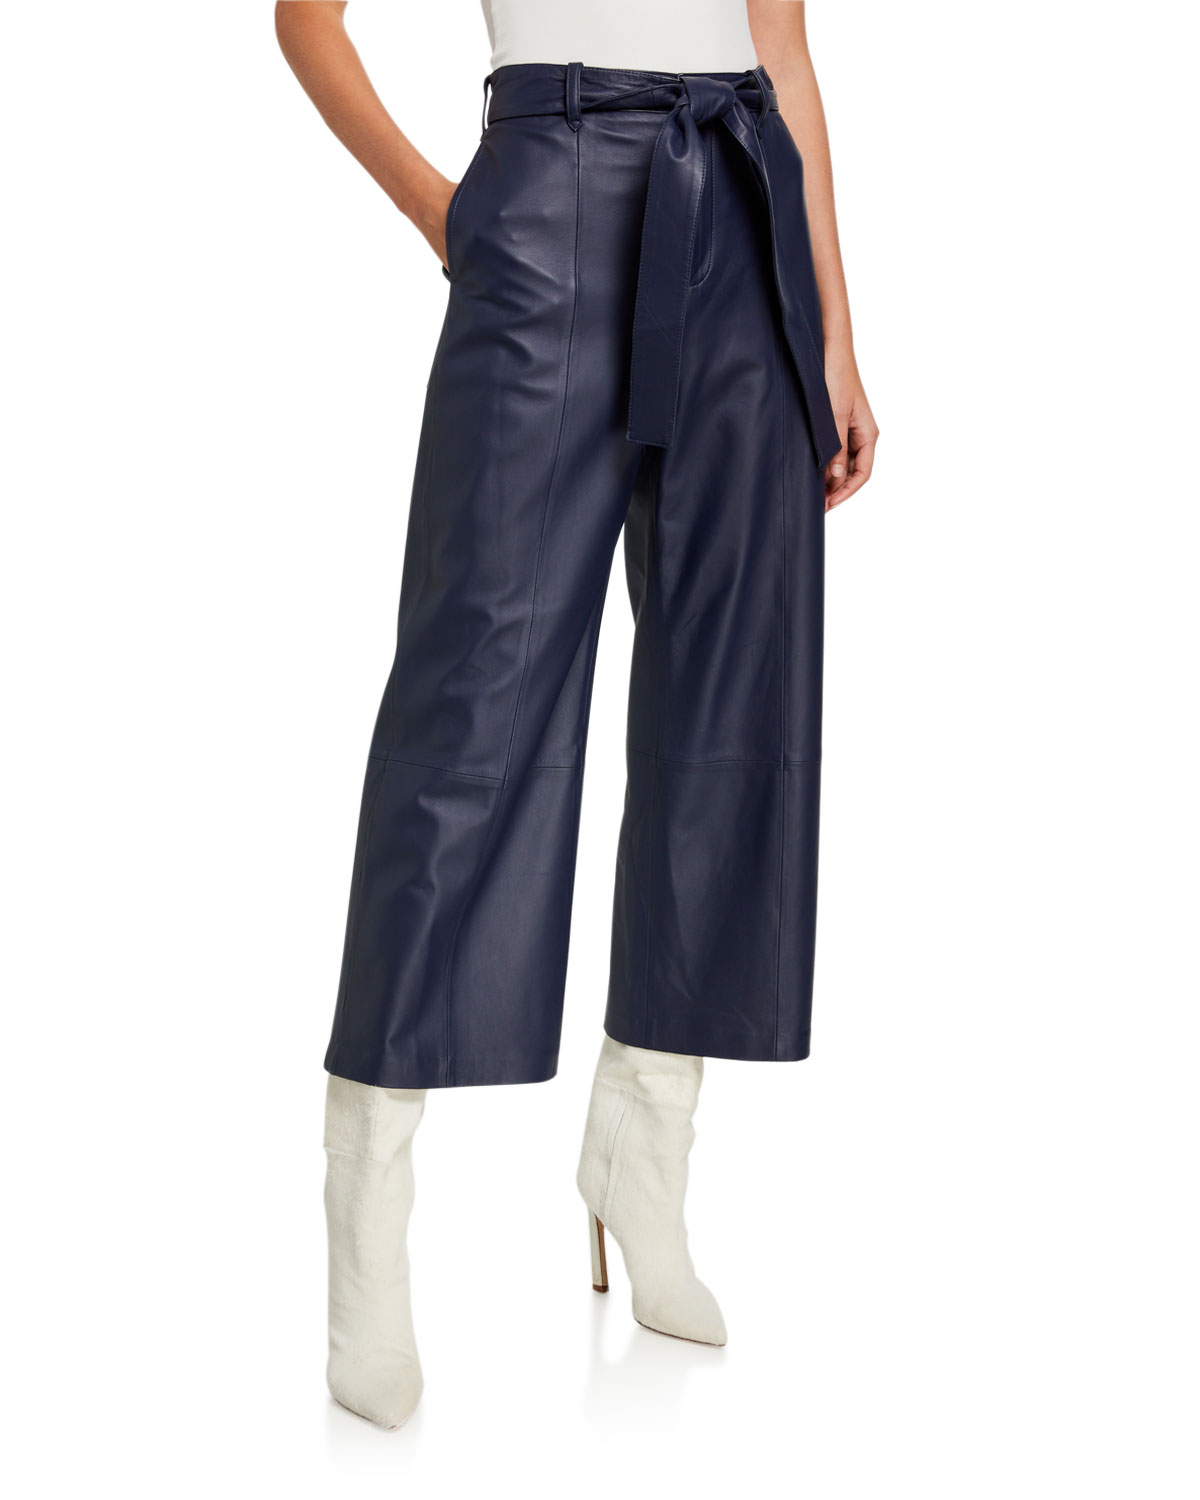 Jason Wu Pants WIDE-LEG LAMBSKIN LEATHER CROP PANTS